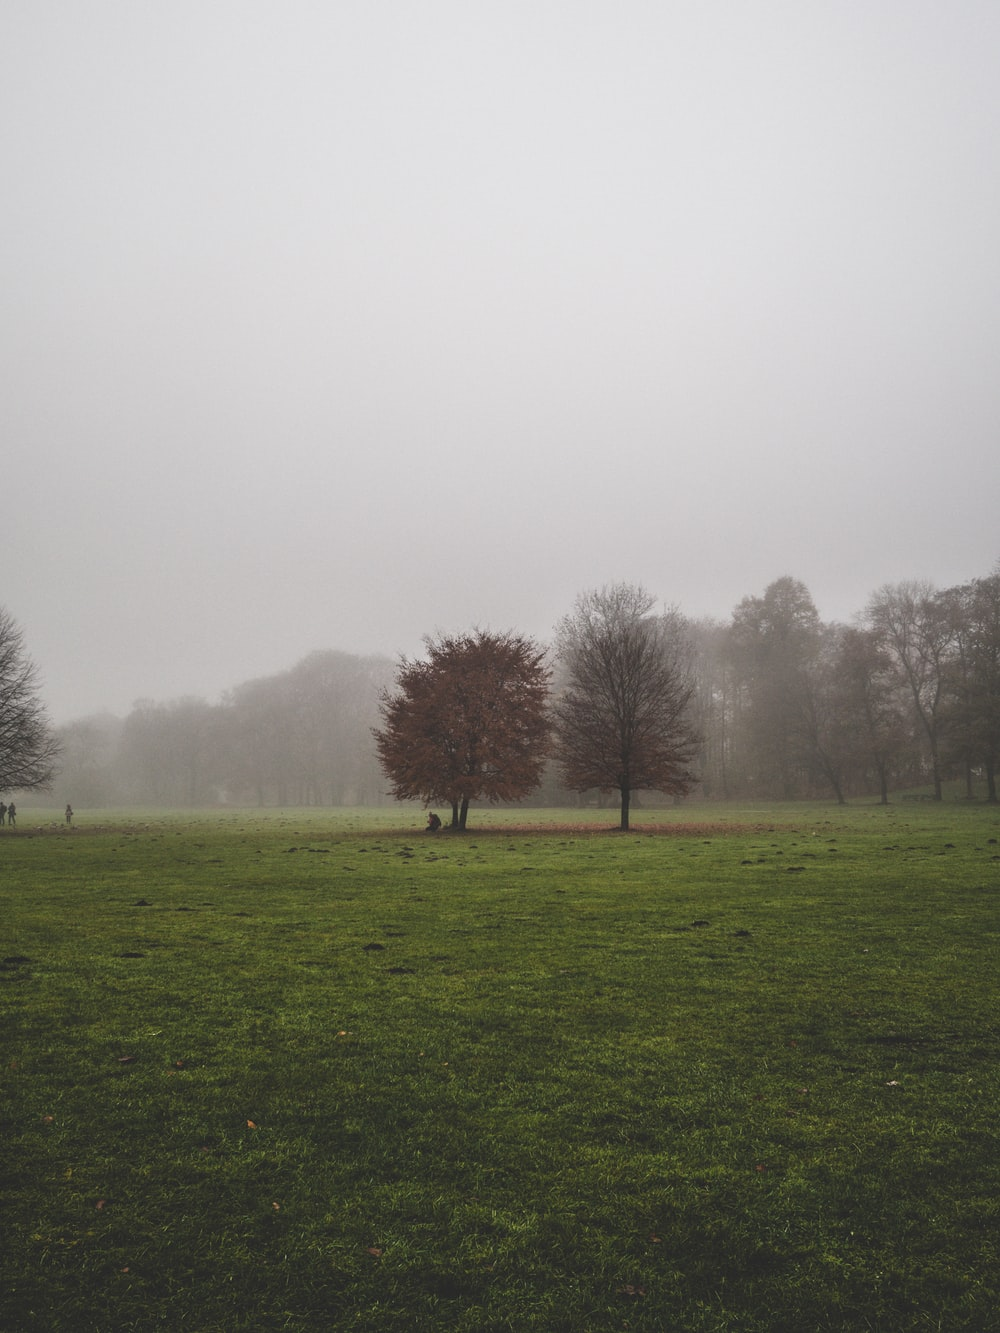 trees and grass field